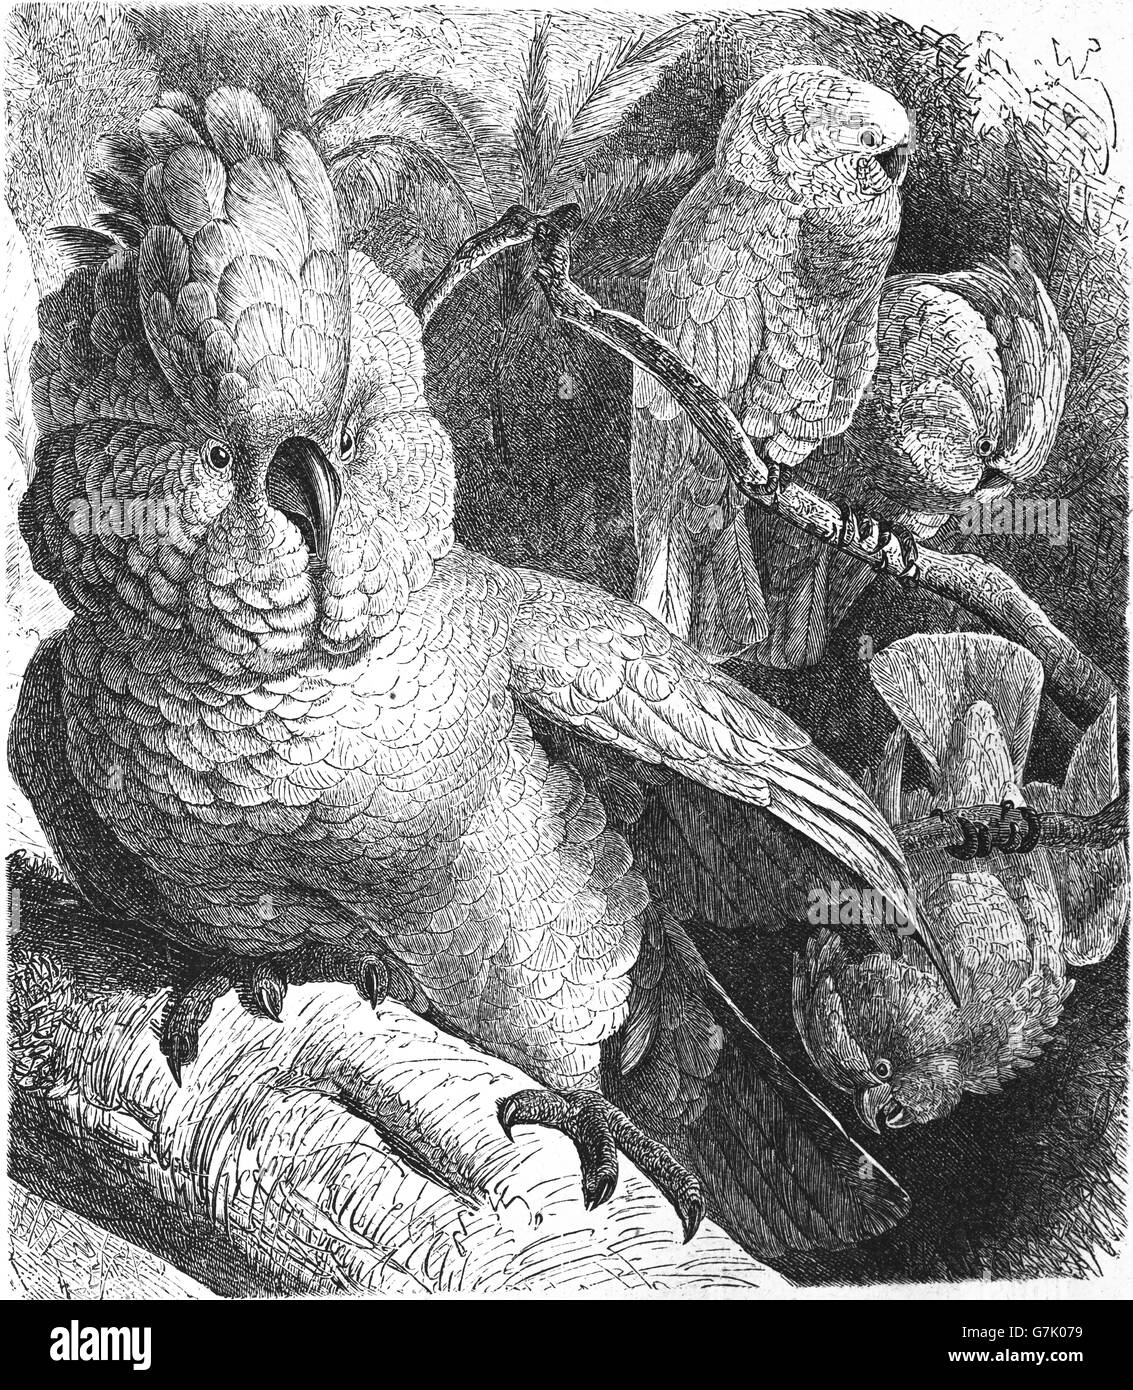 Salmon-crested cockatoo, Cacatua moluccensis, Moluccan cockatoo, illustration from book dated 1904 - Stock Image